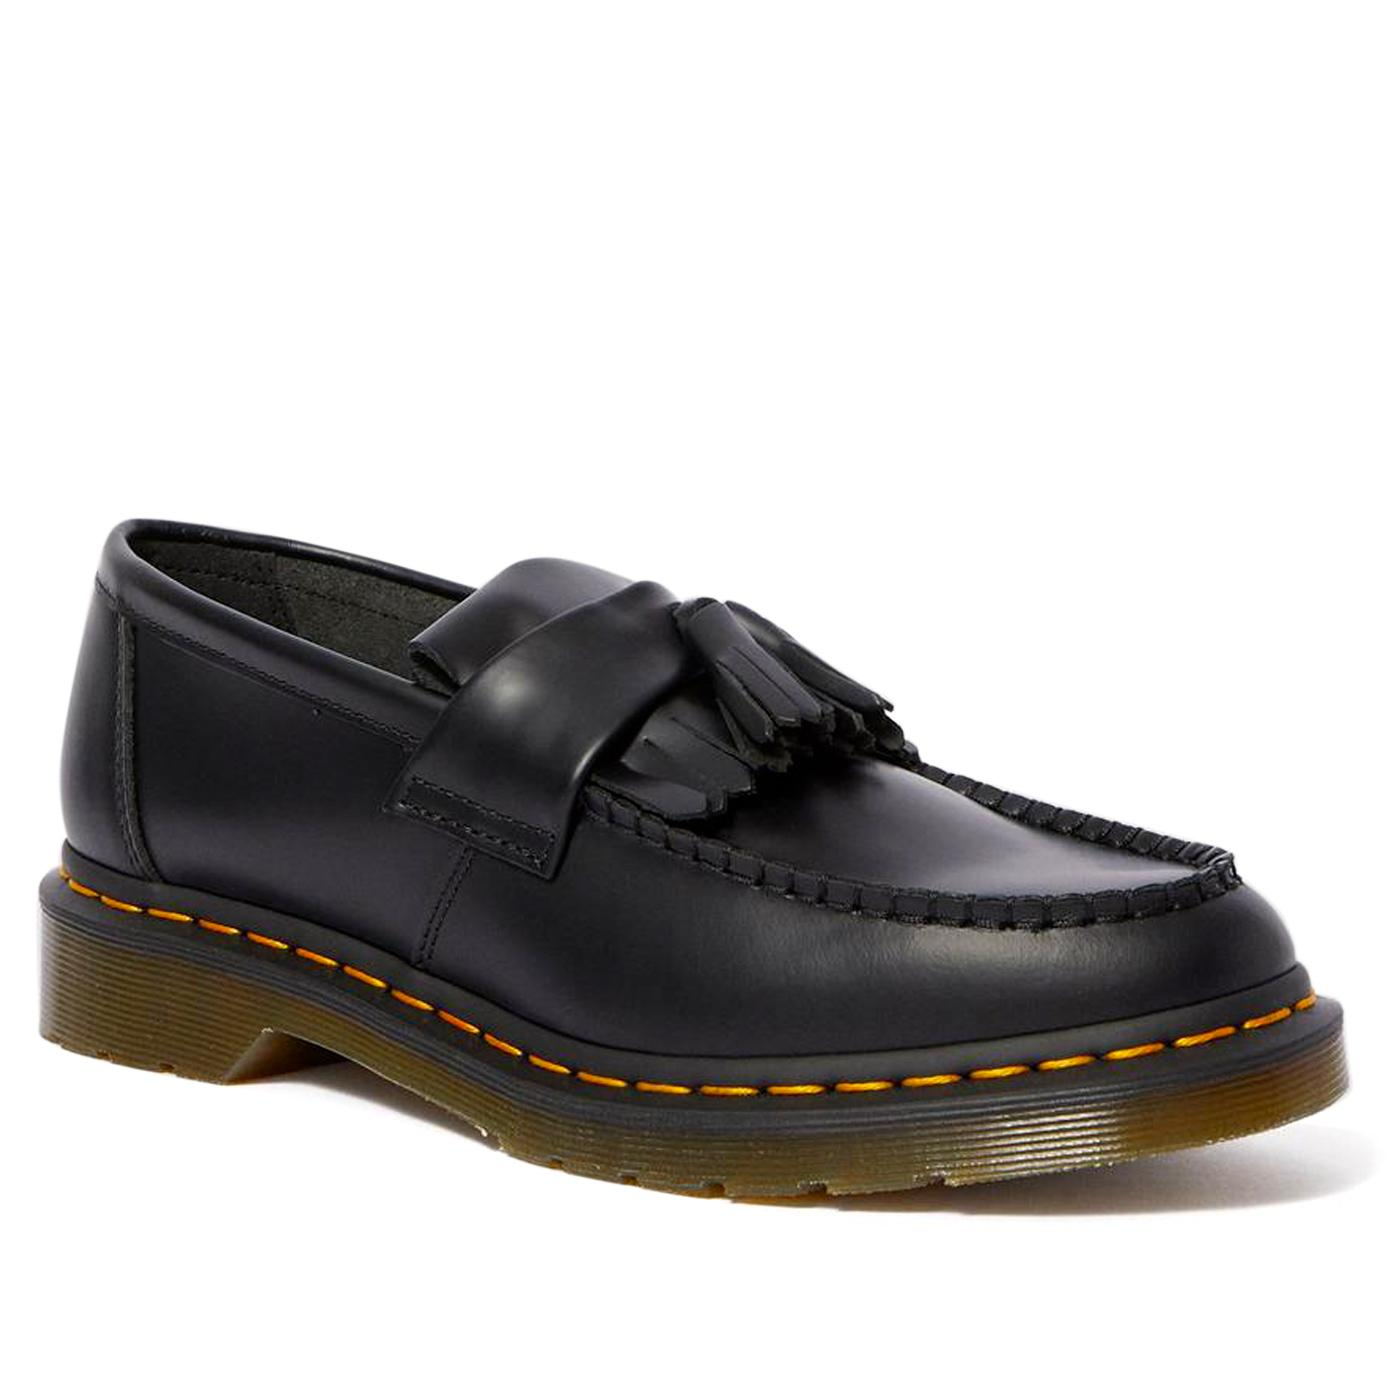 Adrian DR MARTENS Men's Leather Tassel Loafers